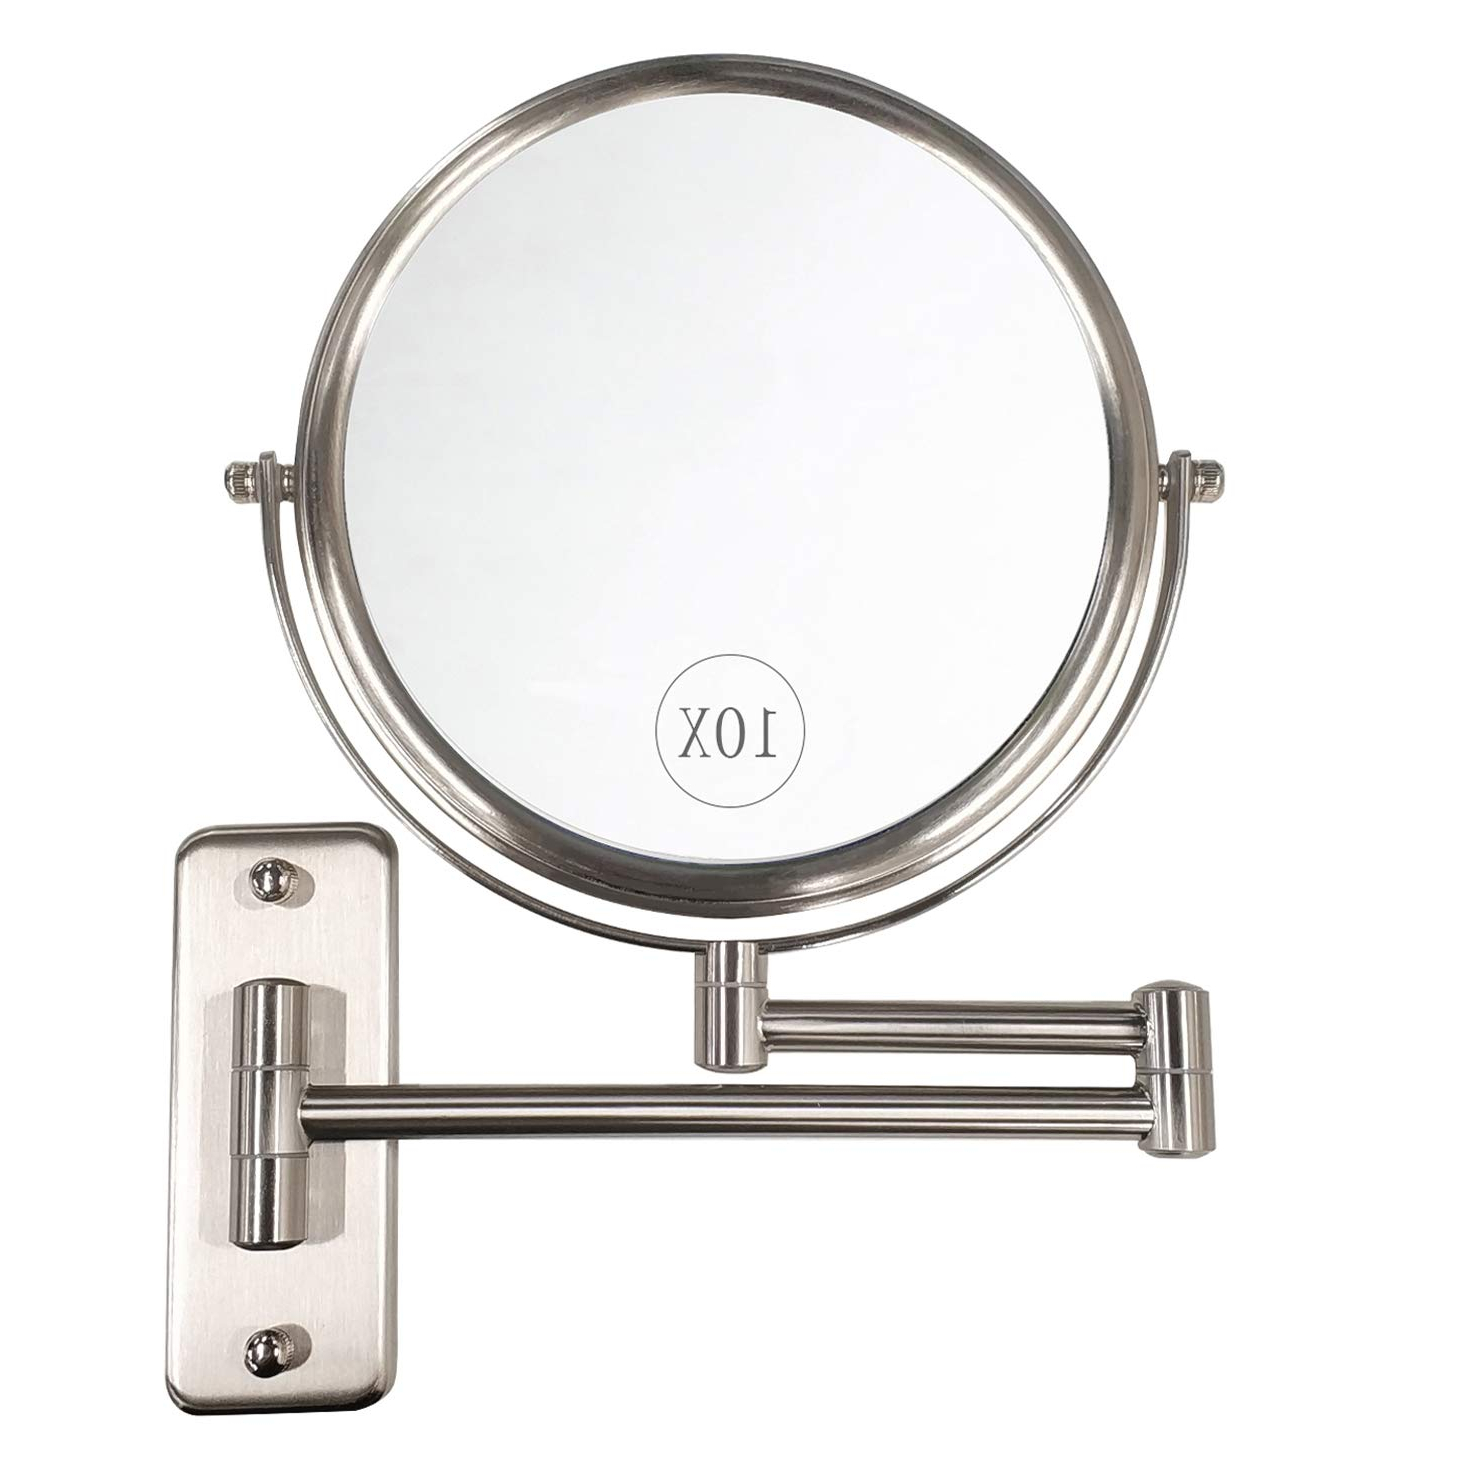 Most Recent Extendable Wall Mirrors Inside Alhakin Wall Mounted Makeup Mirror – 10X Magnification 8'' Two Sided Swivel  Extendable Bathroom Mirror Nickel Finish (Gallery 3 of 20)